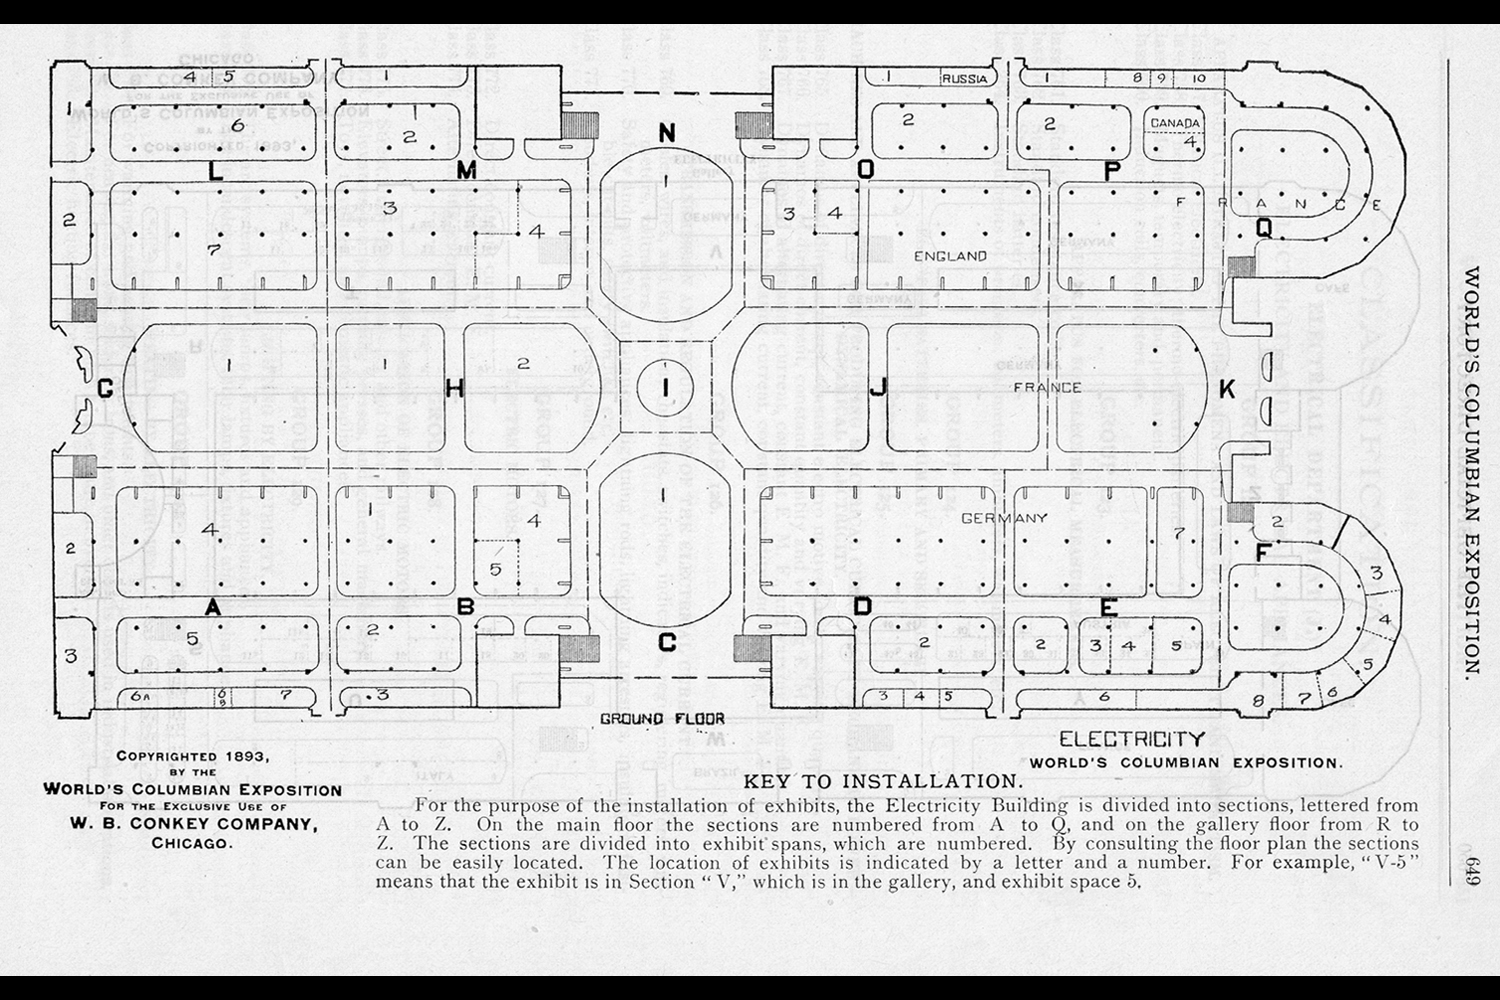 empire state building floor plans submited images